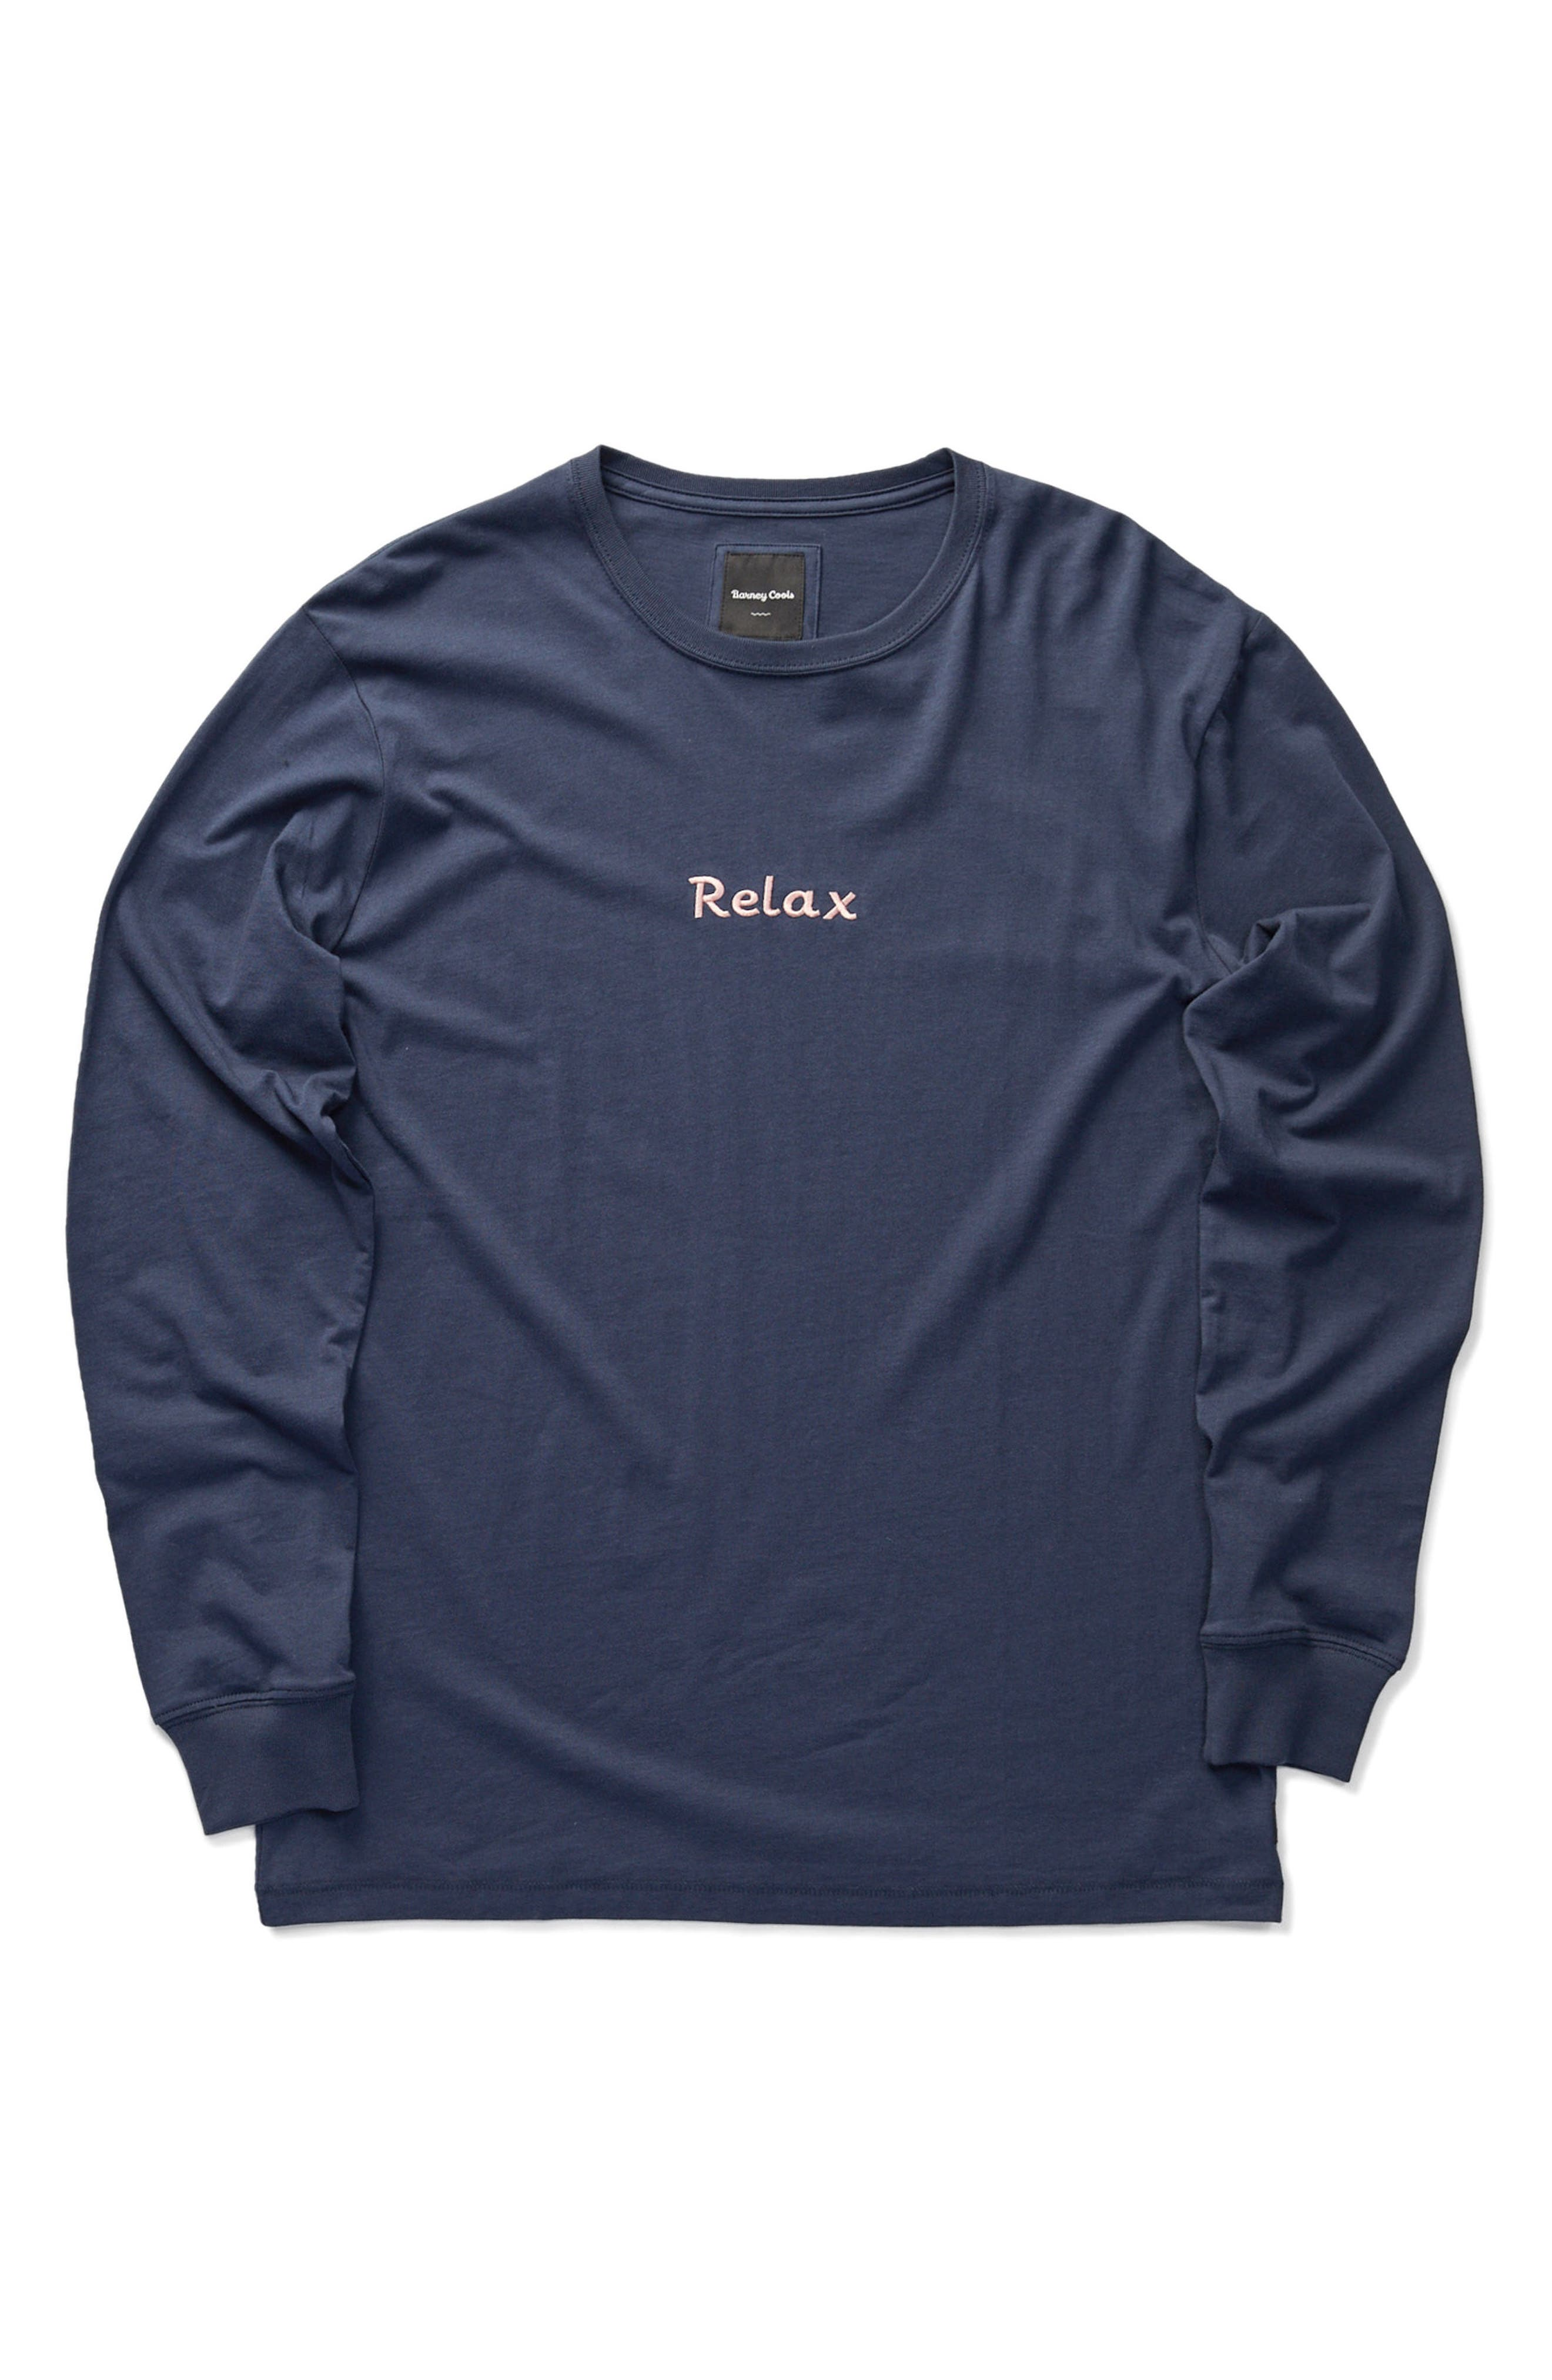 Relax Embroidered Long Sleeve T-Shirt,                             Alternate thumbnail 4, color,                             415